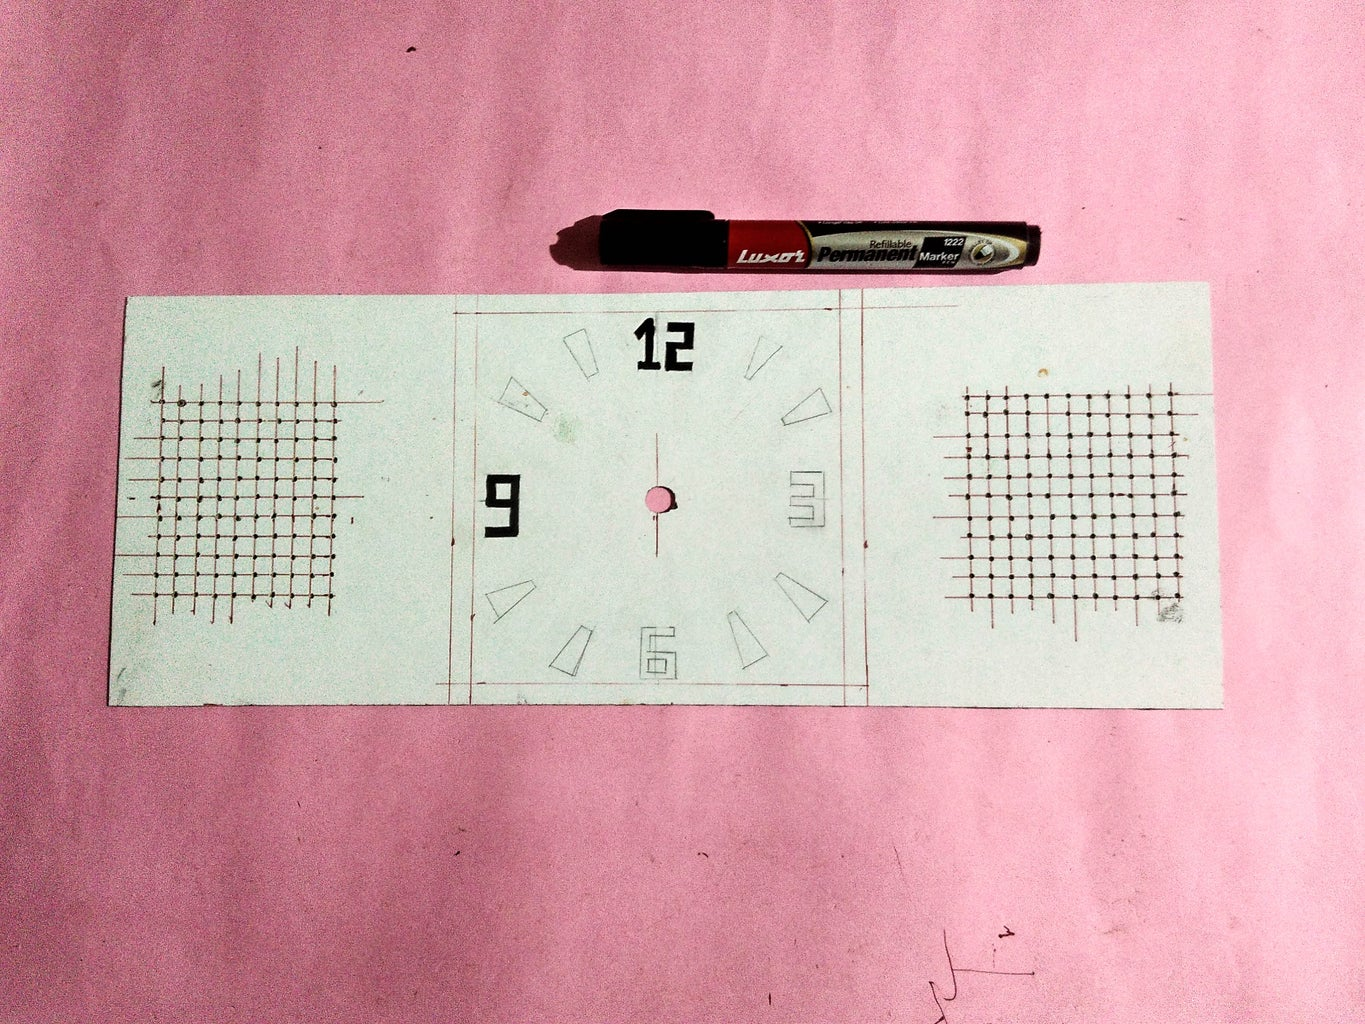 Designing the Face of the Clock.